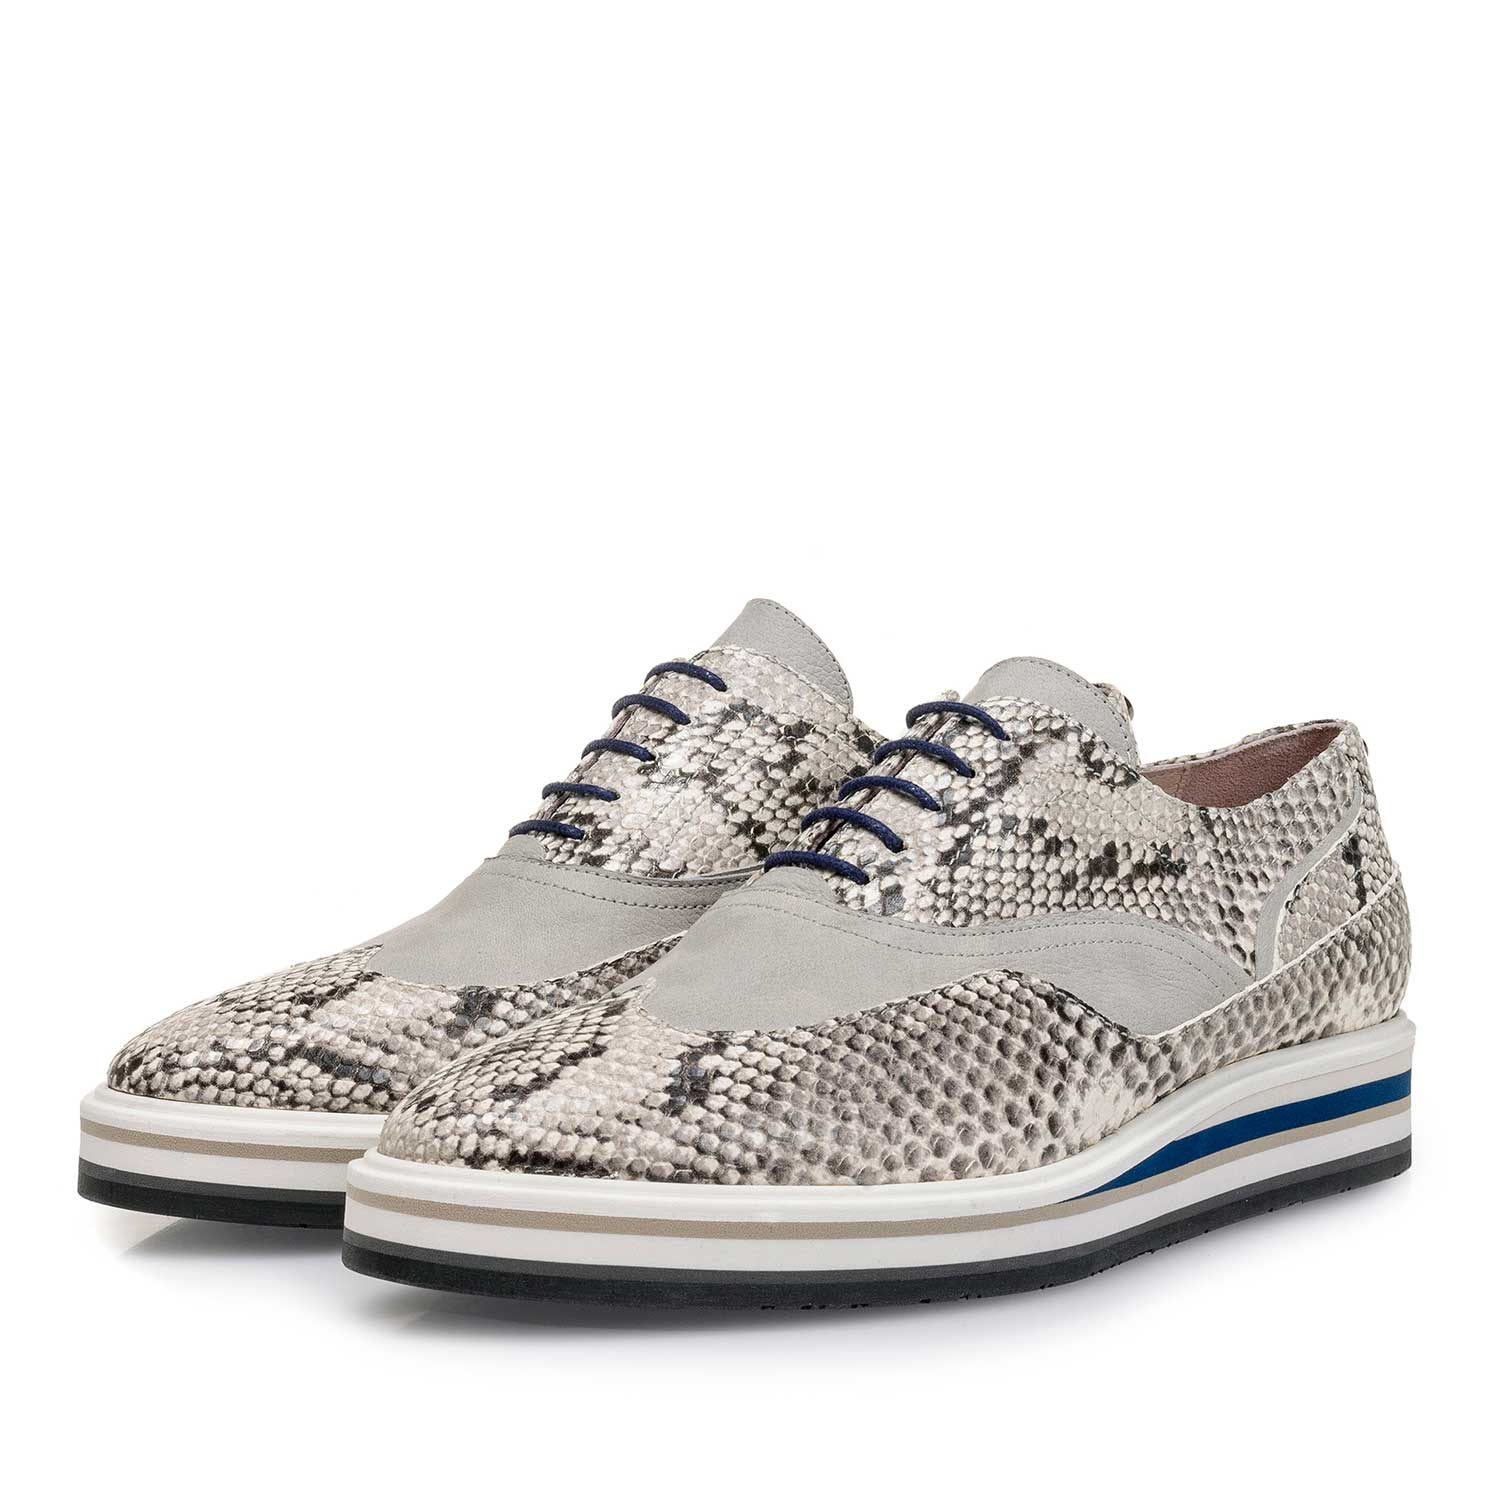 85806/00 - White snake print leather lace shoe